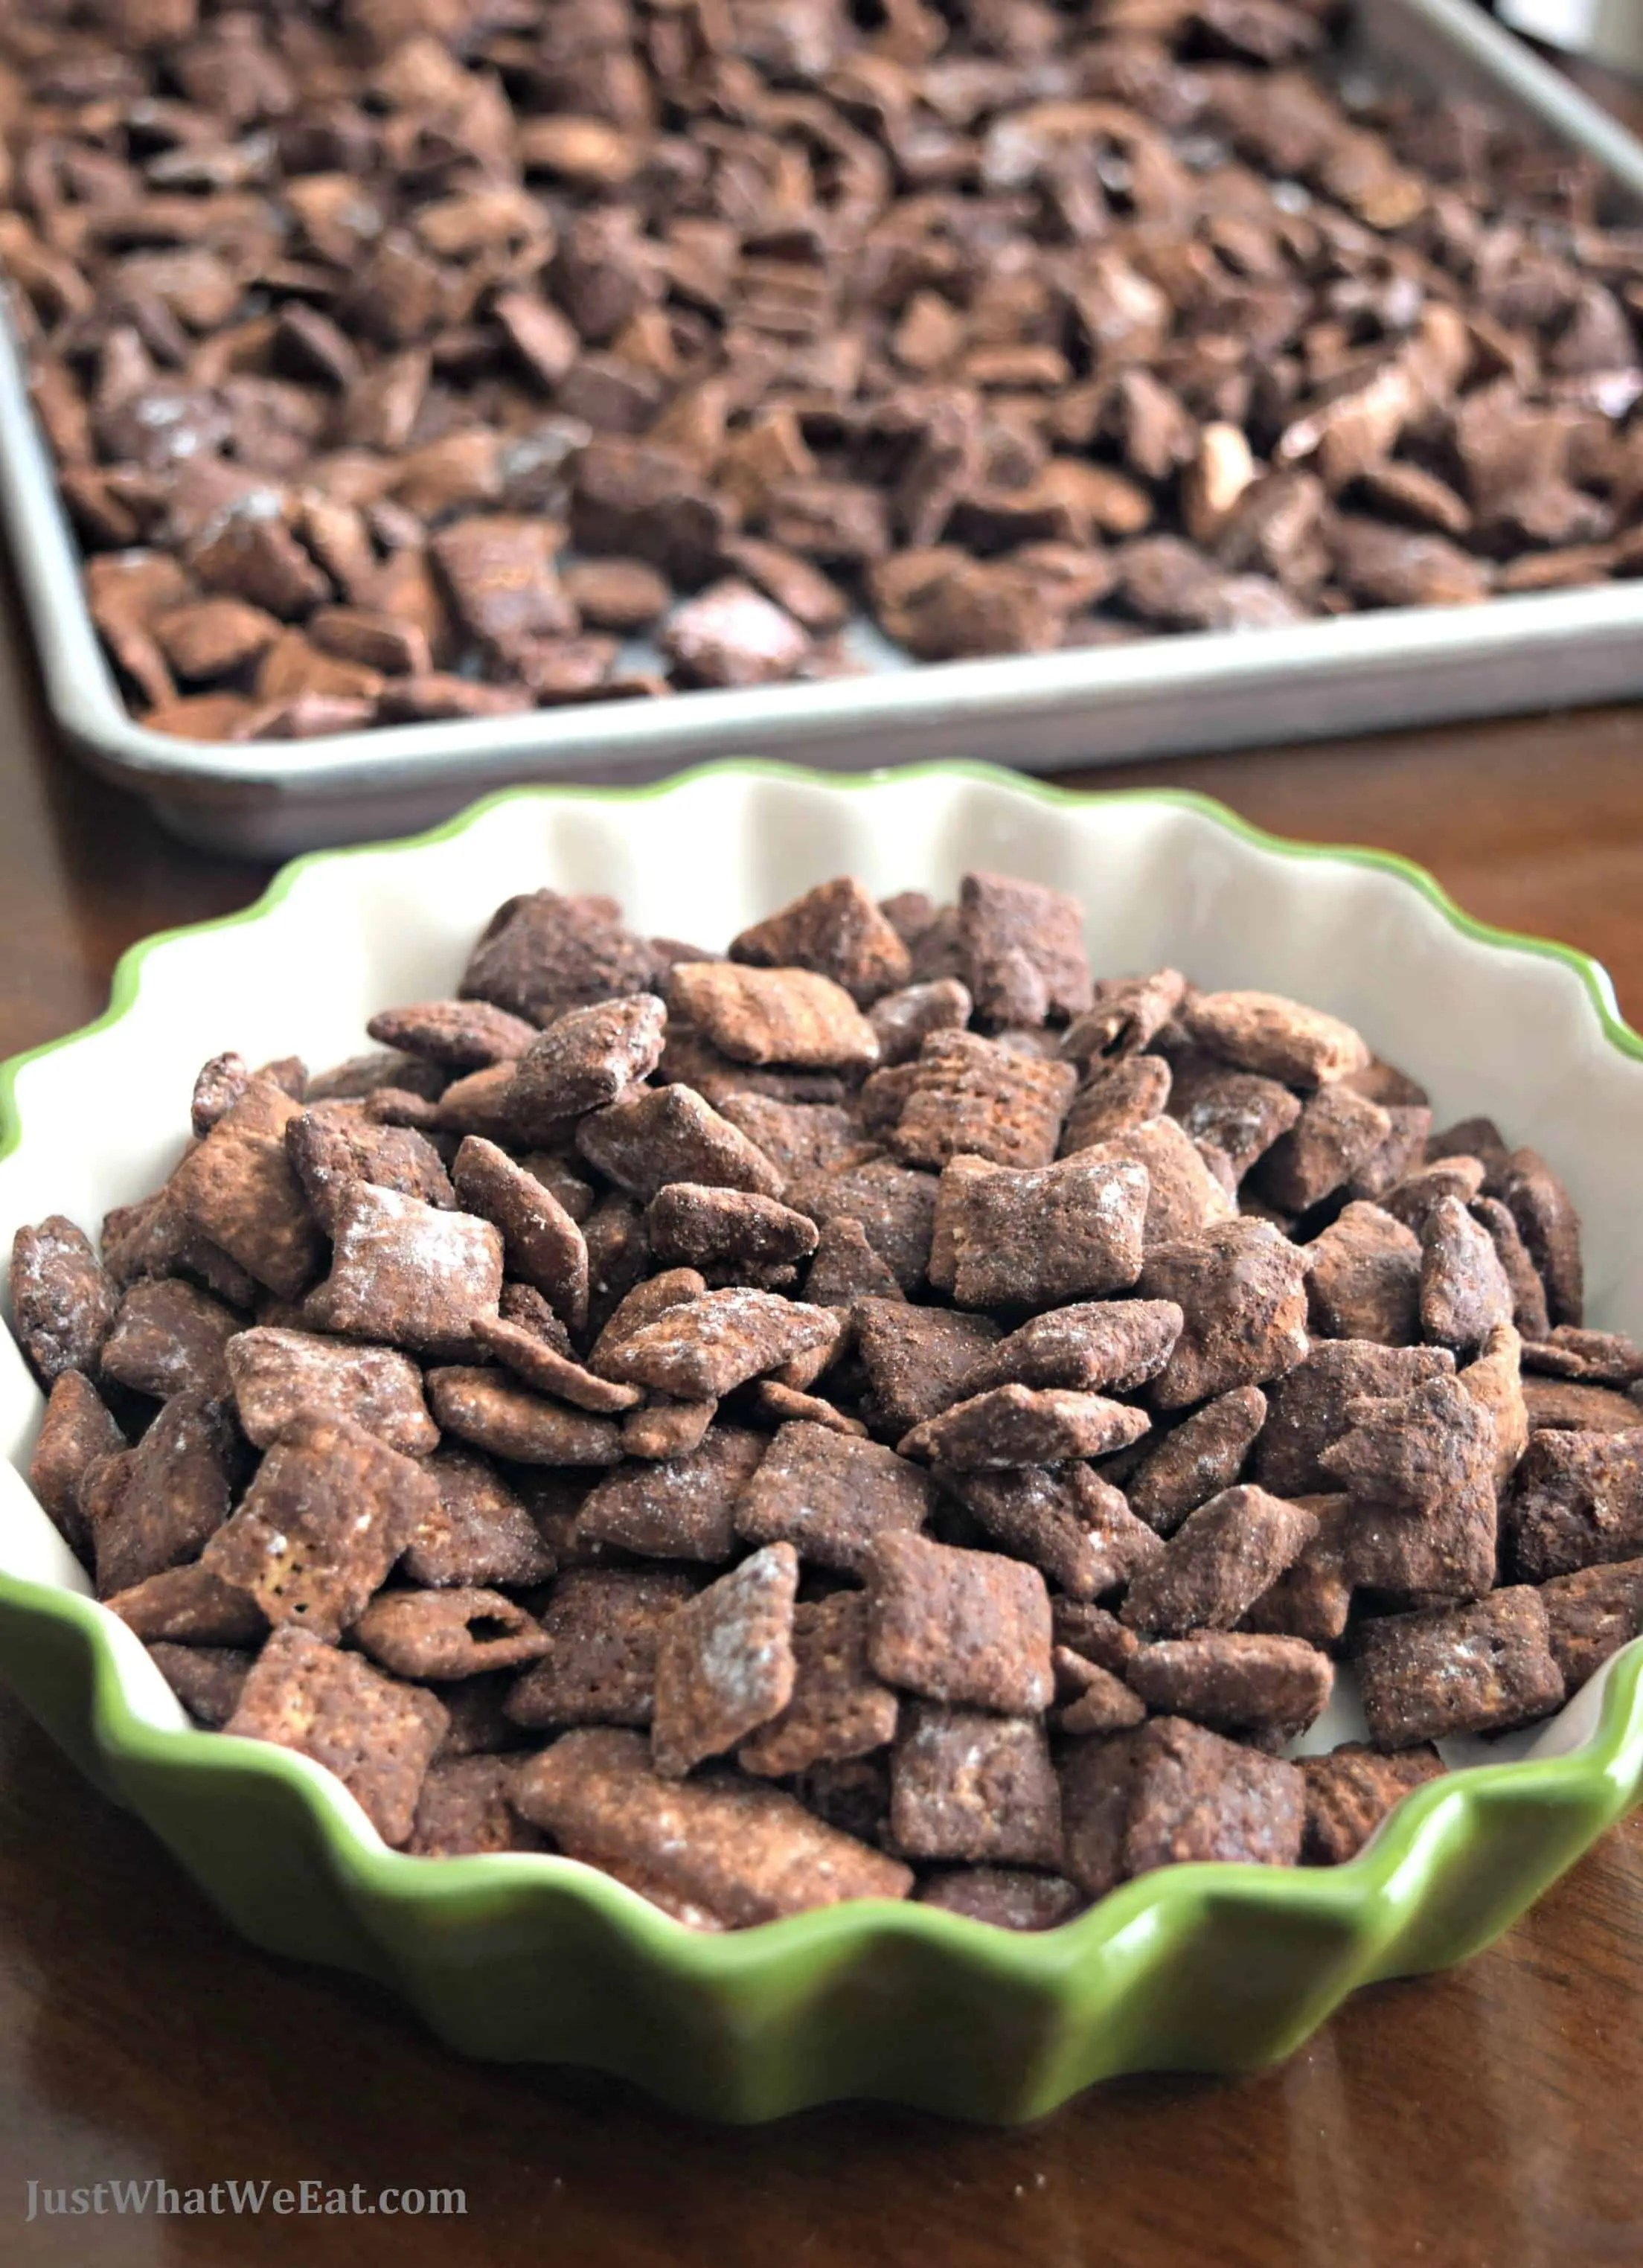 Cocoa Puppy Chow - Gluten Free & Vegan